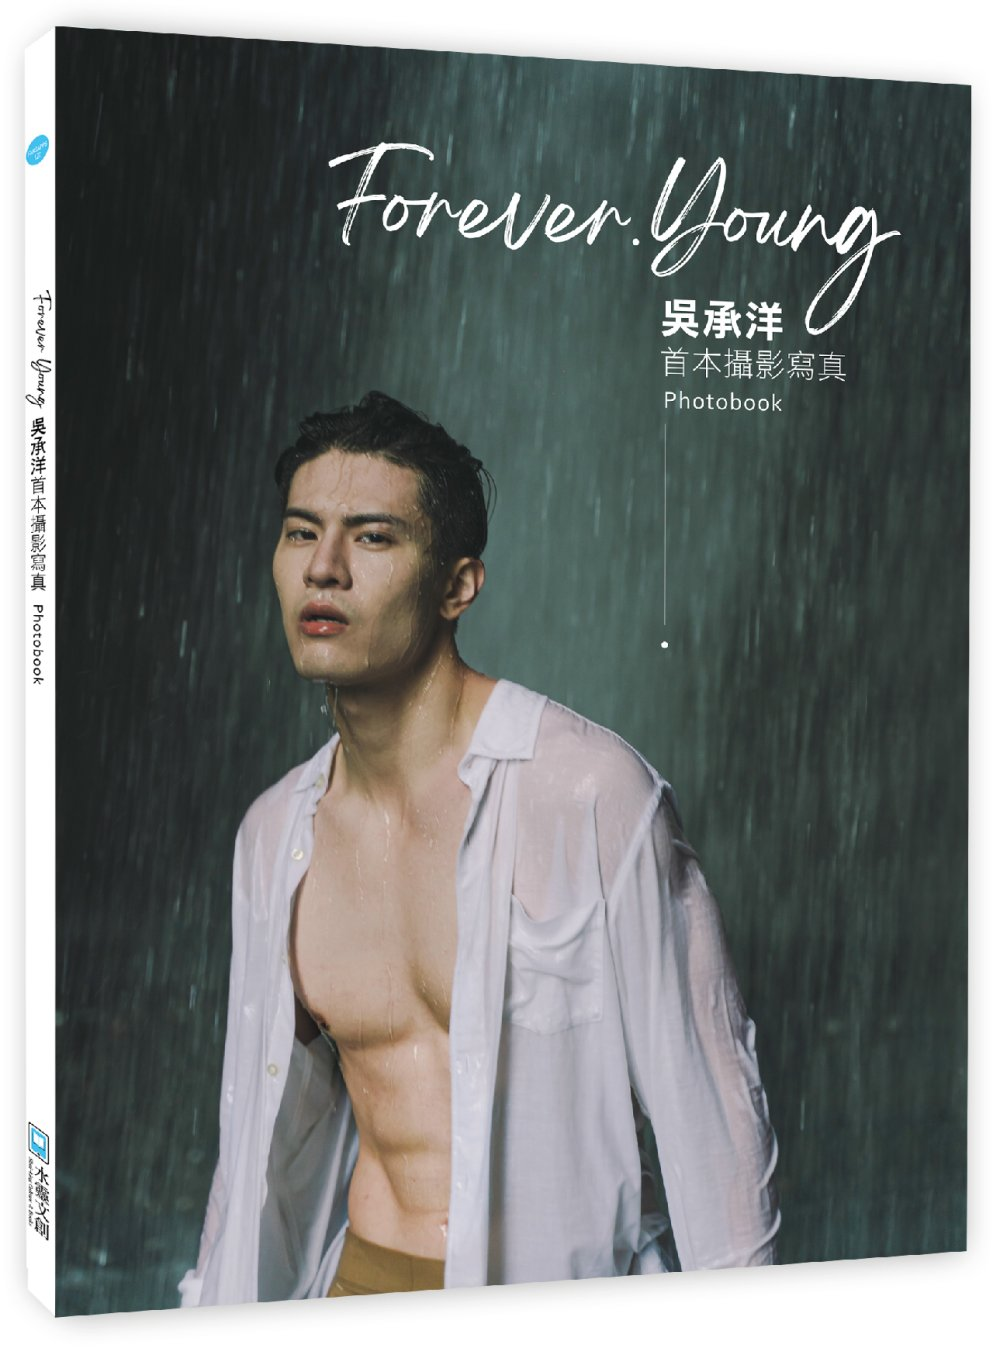 Forever.Young吳承洋首本攝影寫真photobook【親簽版】